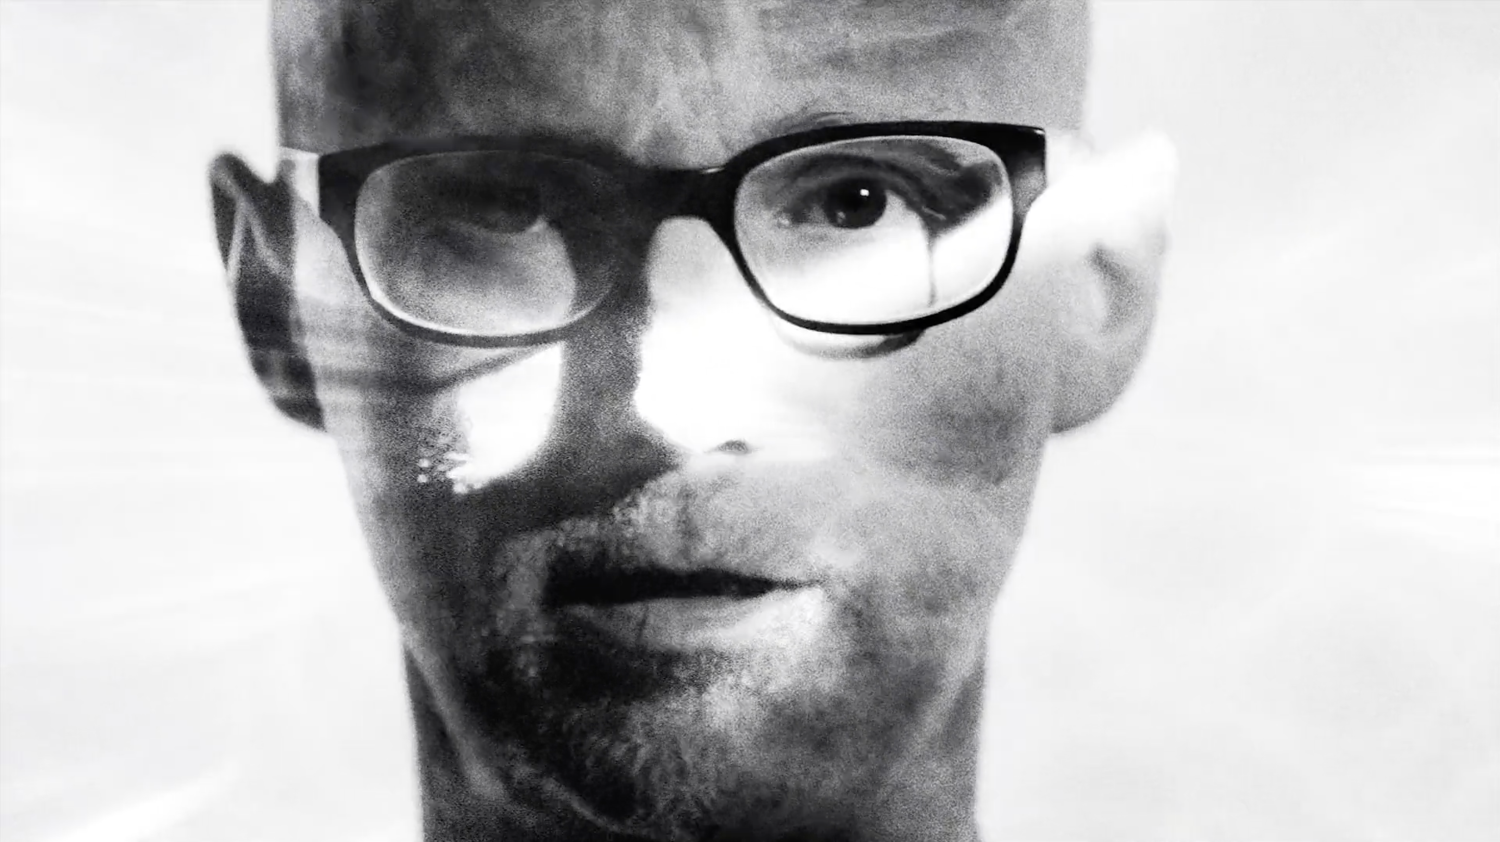 ESCHATOLOGY AND SPACE TRAVEL IN NEW MOBY VIDEO, STREAMS UPCOMING